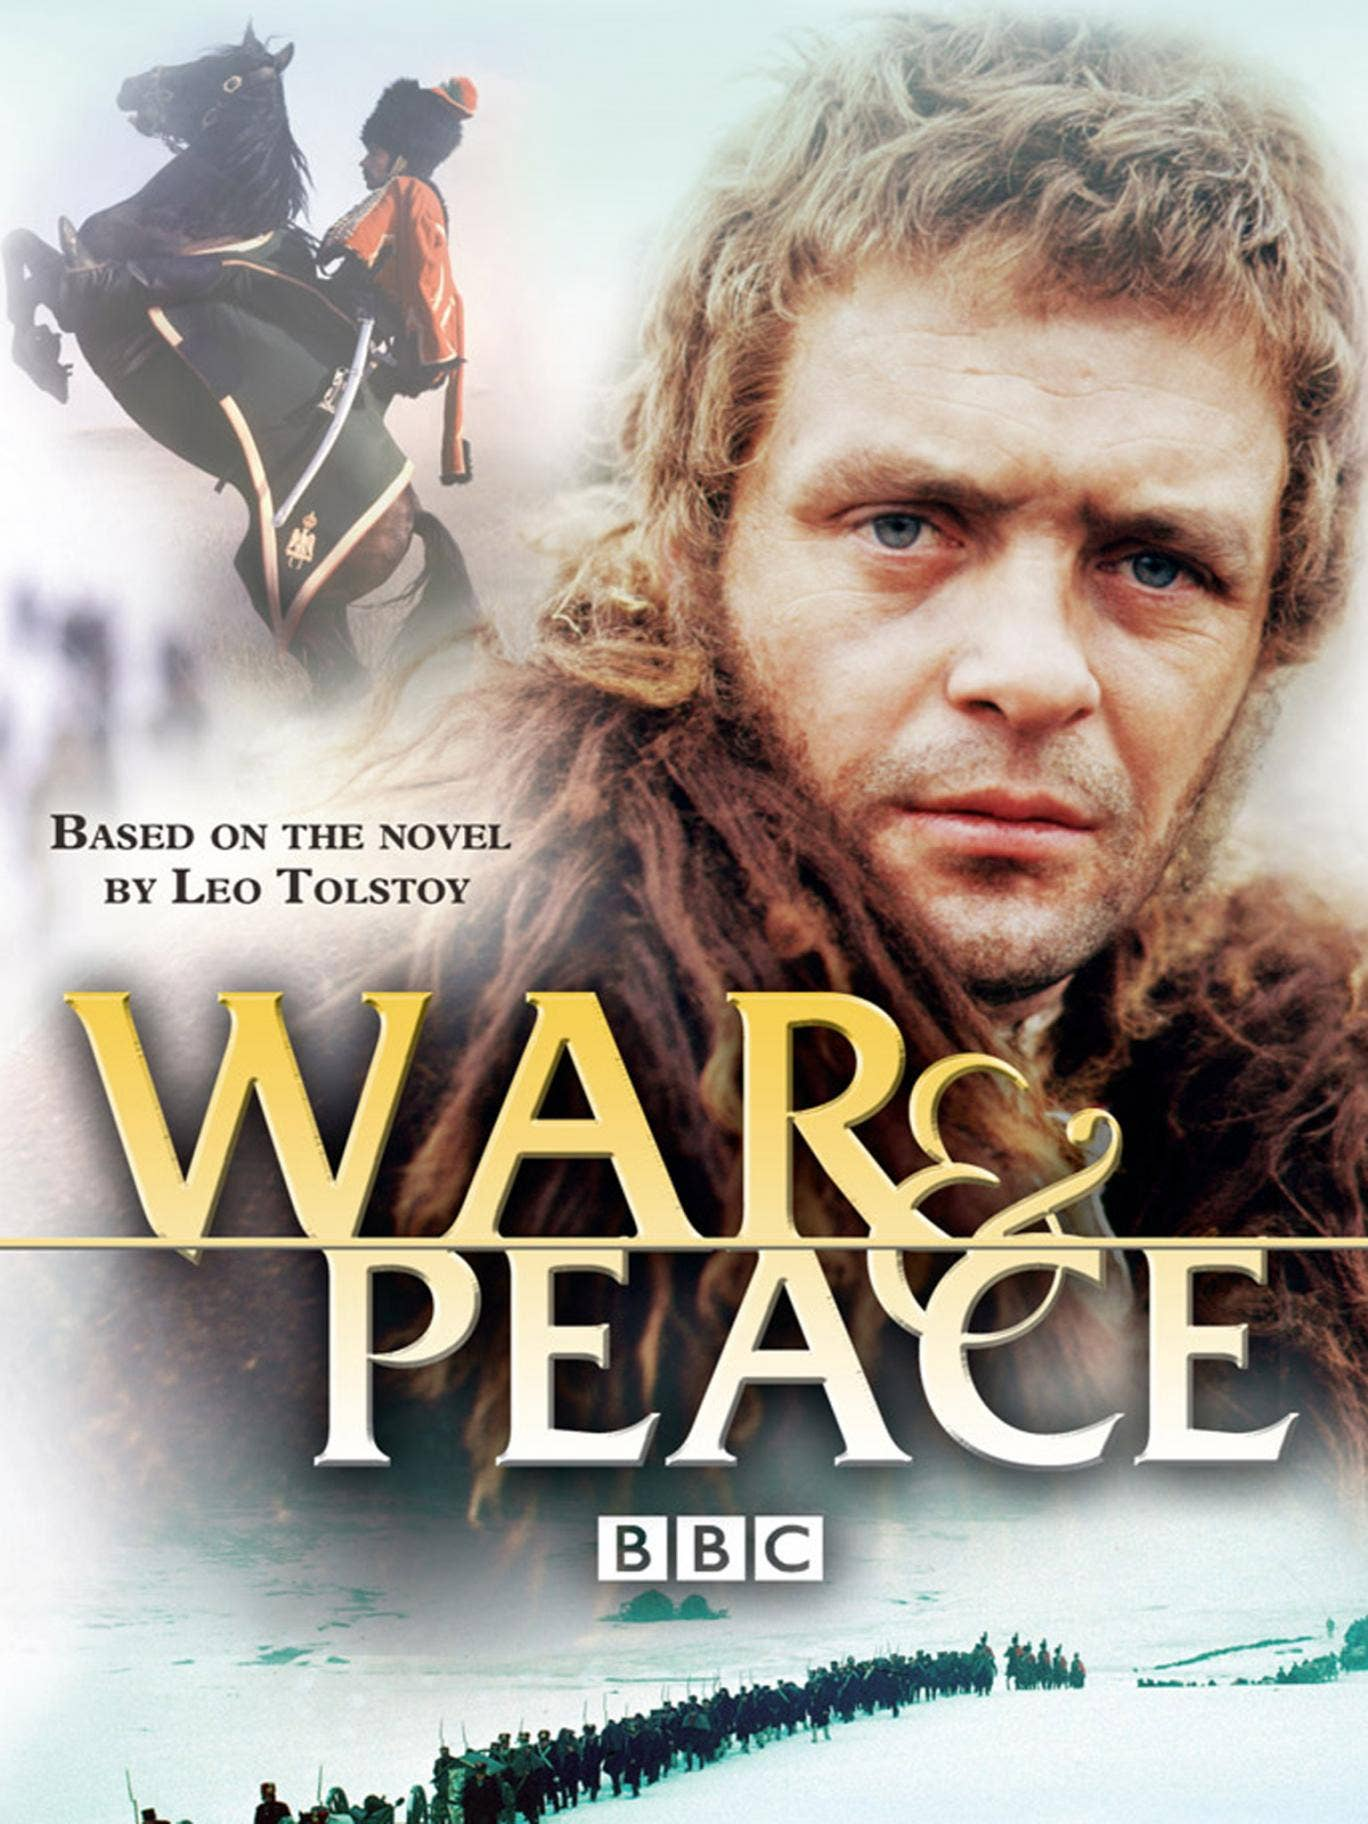 1974's BBC adaptation of 'War and Peace', starring Anthony Hopkins, consisted of 20 episodes